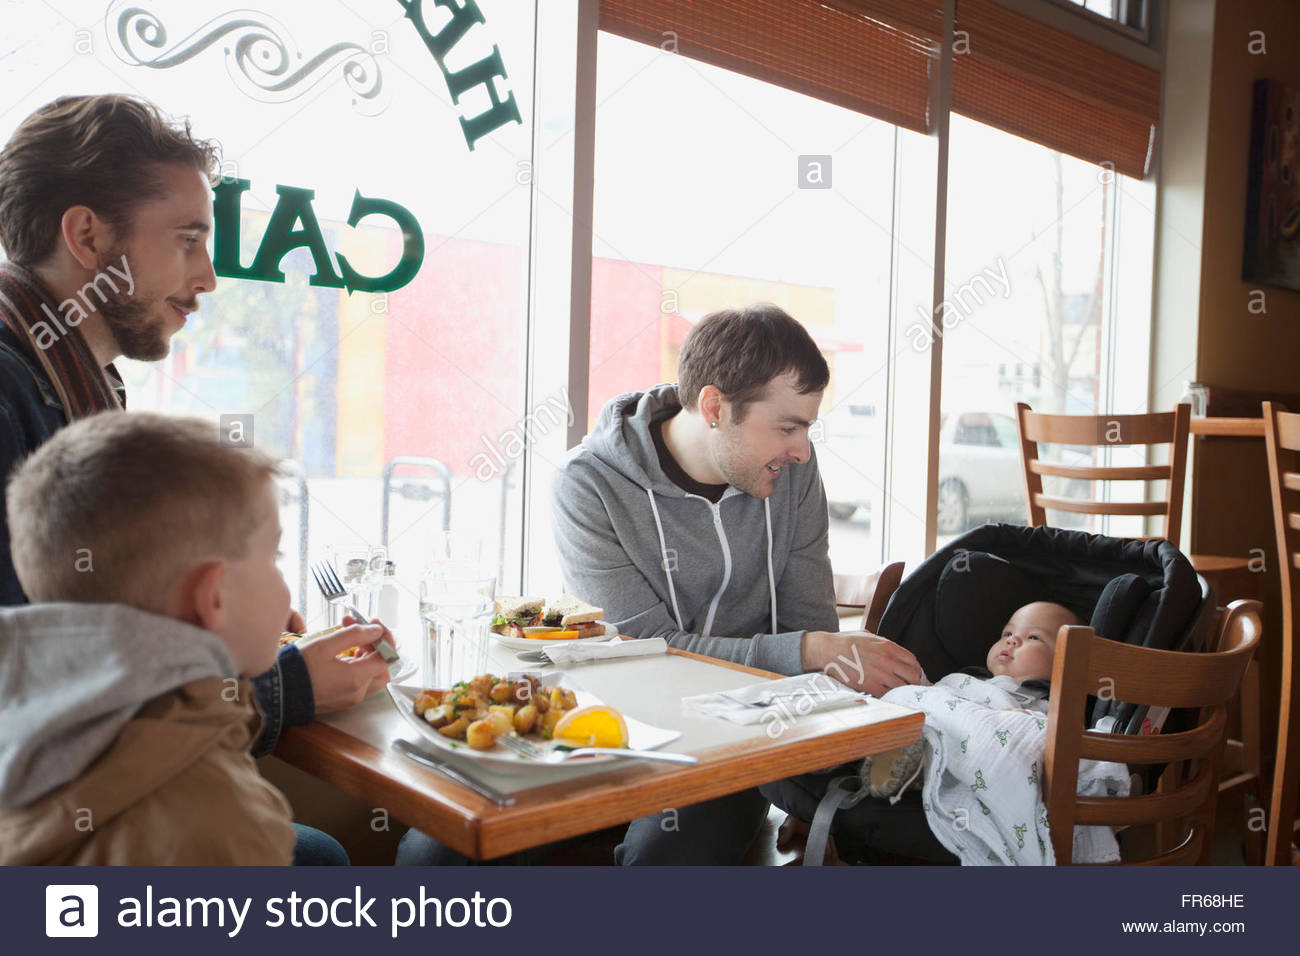 fathers enjoying lunch with young sons - Stock Image